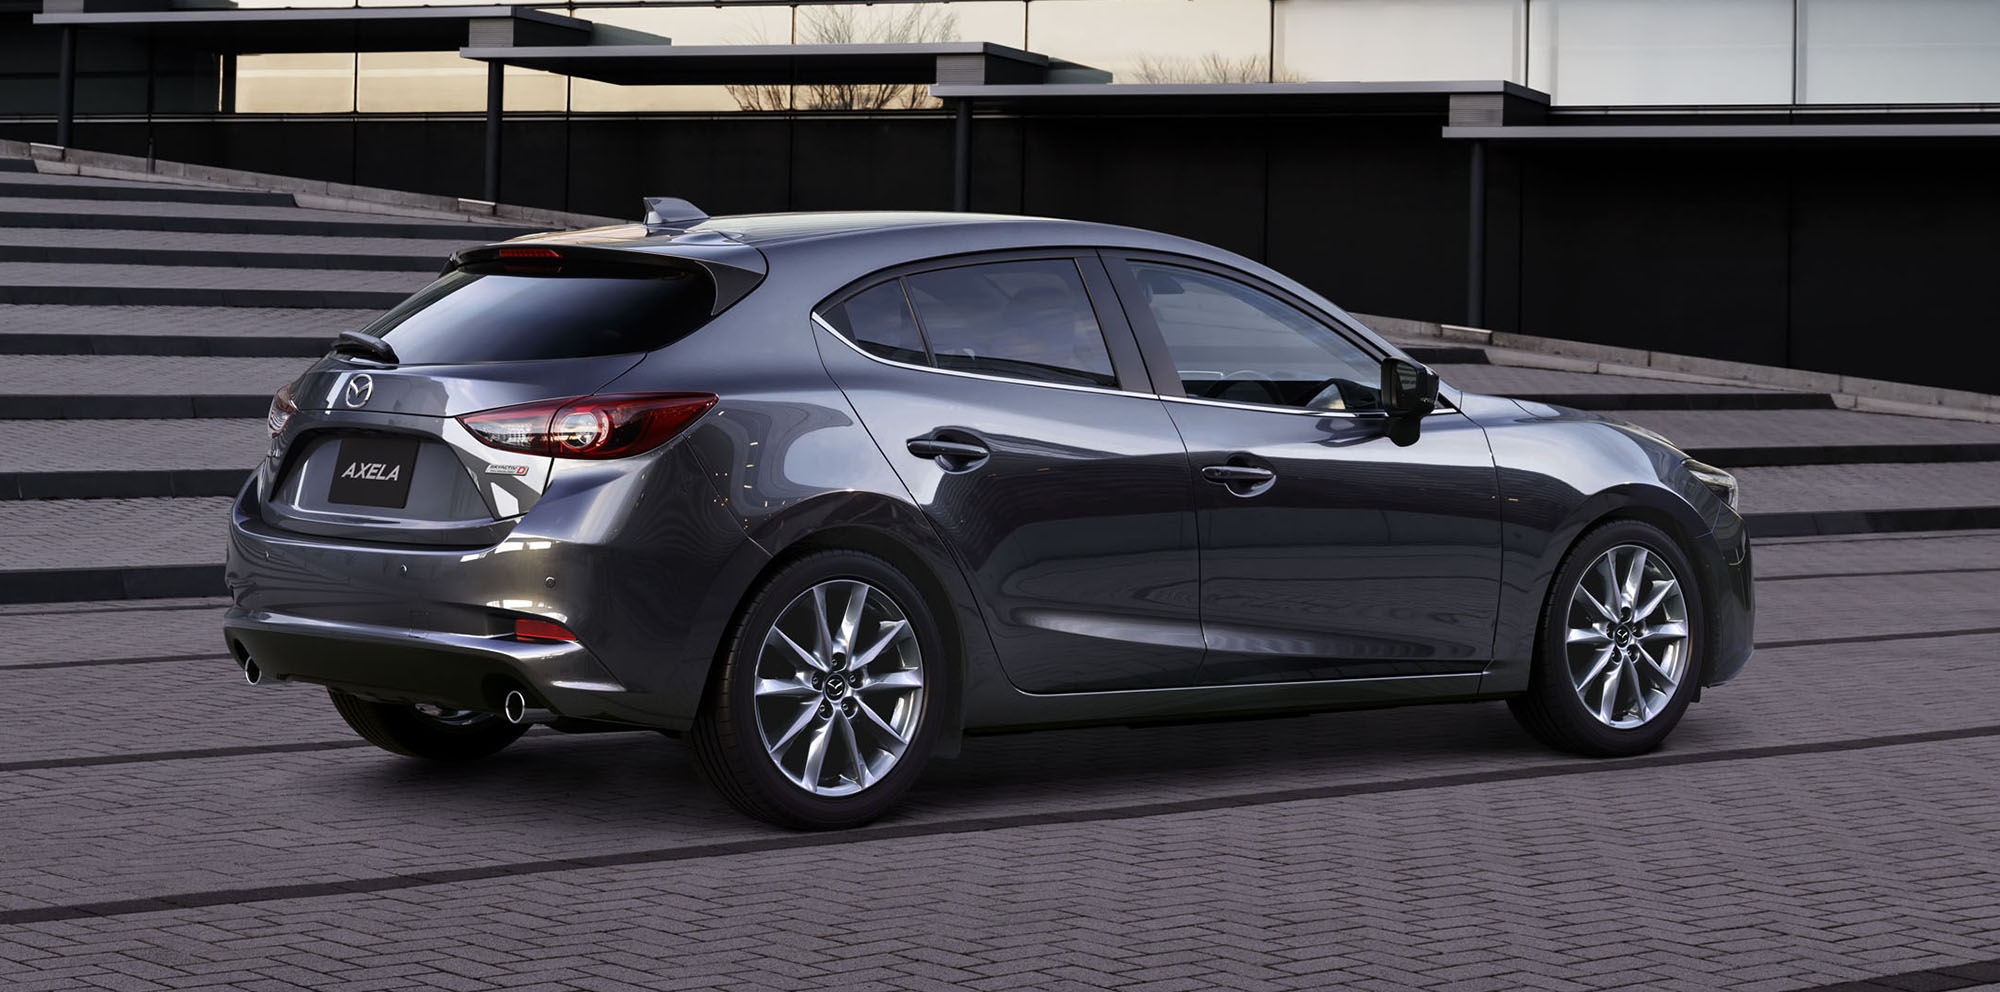 2017 mazda 3 facelift unveiled arrives in australia august. Black Bedroom Furniture Sets. Home Design Ideas